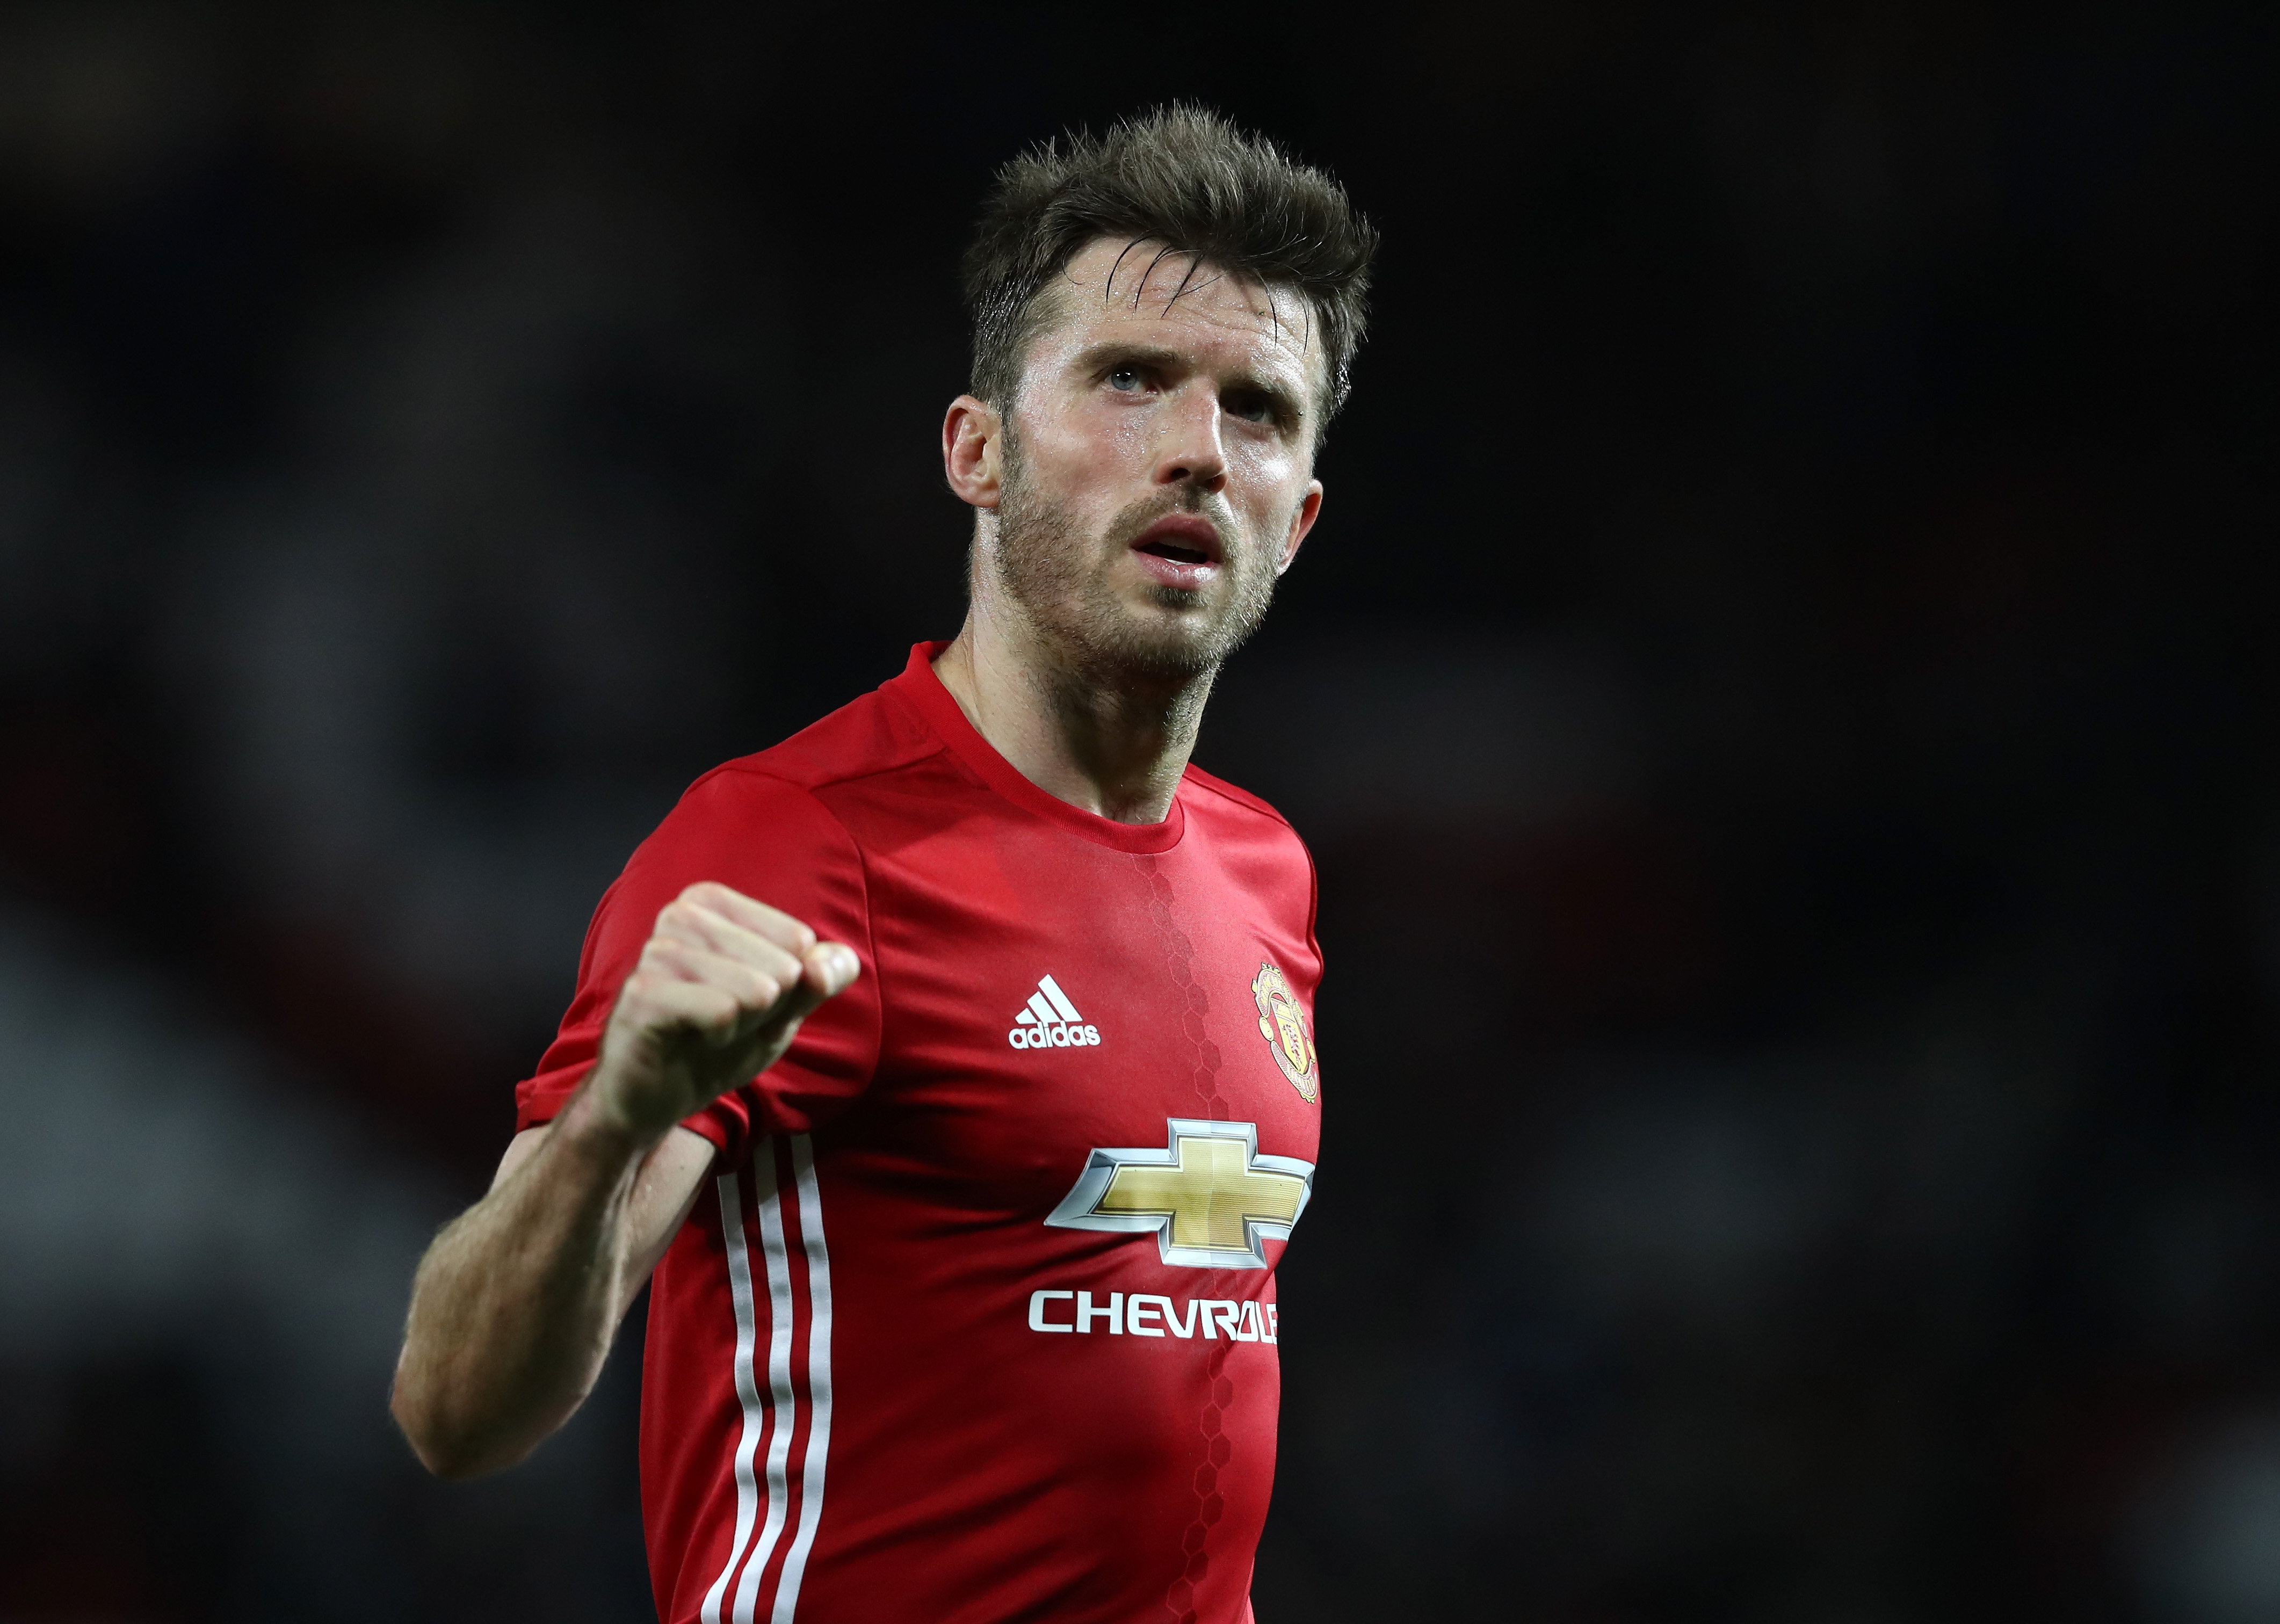 MANCHESTER, ENGLAND - OCTOBER 26: Michael Carrick of Manchester United reacts to his side winning, after the final whistle during the EFL Cup fourth round match between Manchester United and Manchester City at Old Trafford on October 26, 2016 in Manchester, England. (Photo by David Rogers/Getty Images)